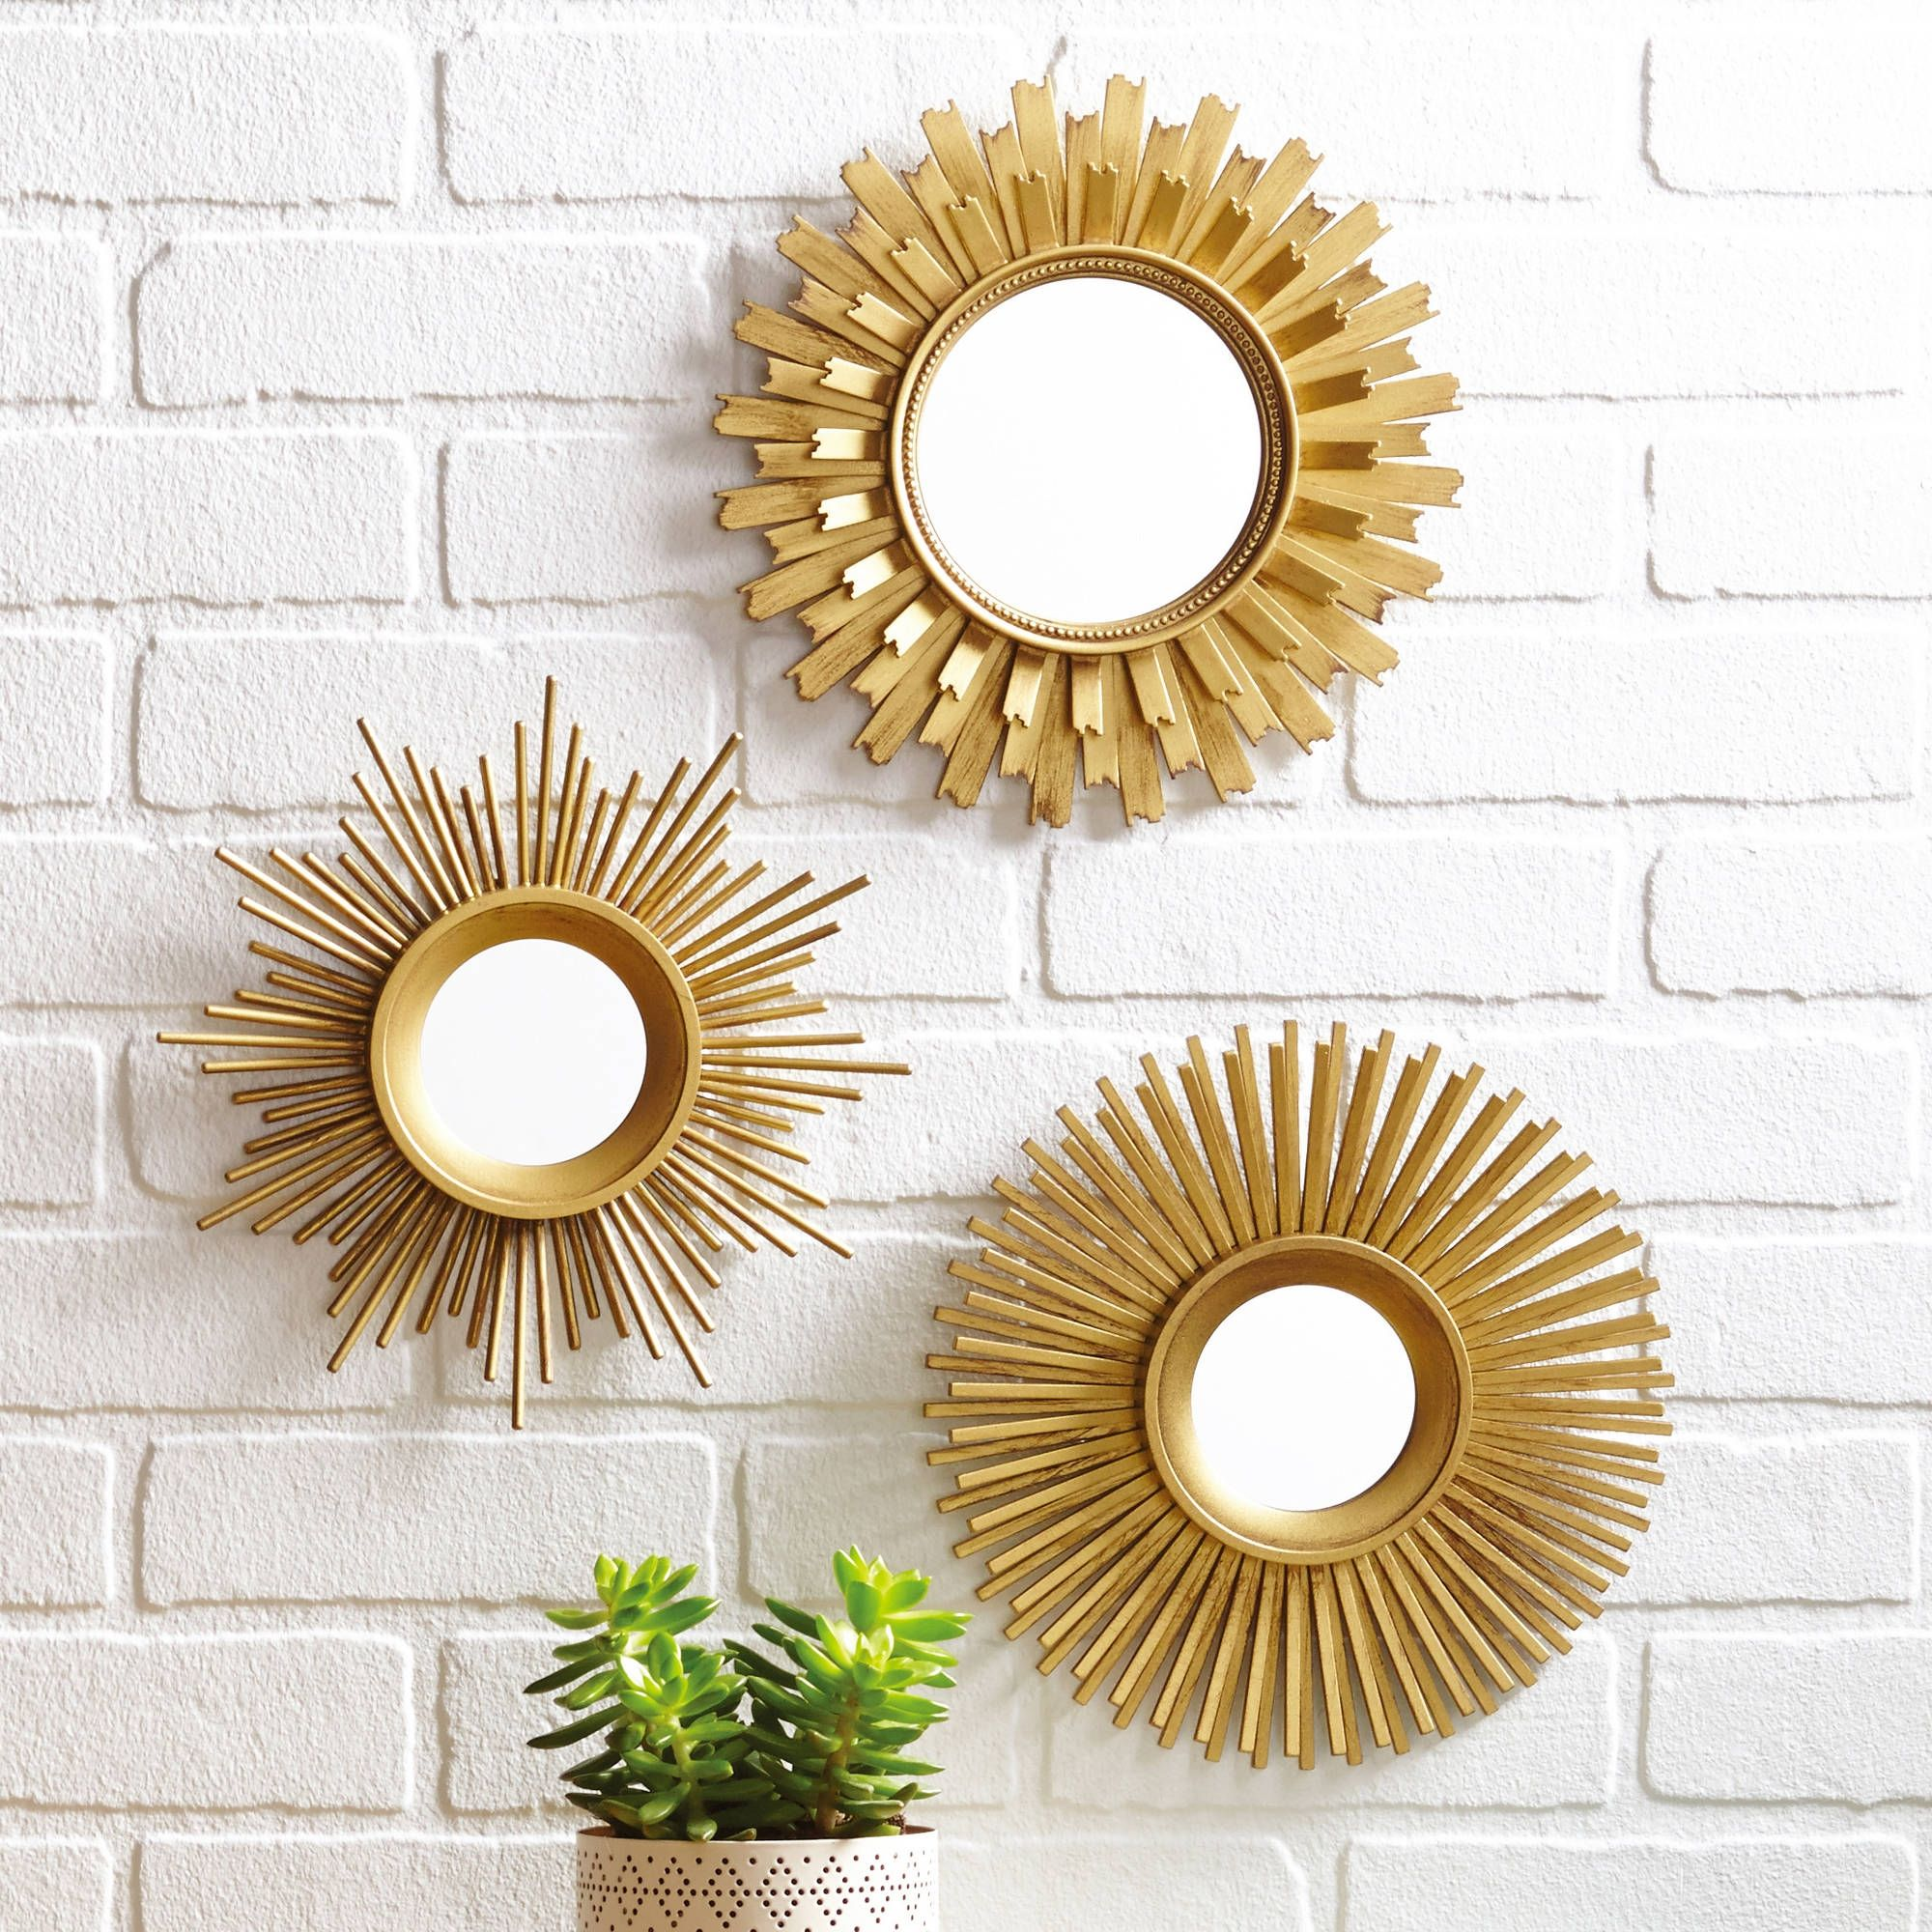 Small Decorative Wall Mirror Set Sunburst Mirror Wall Wall Mirrors Set Gold Sunburst Mirror